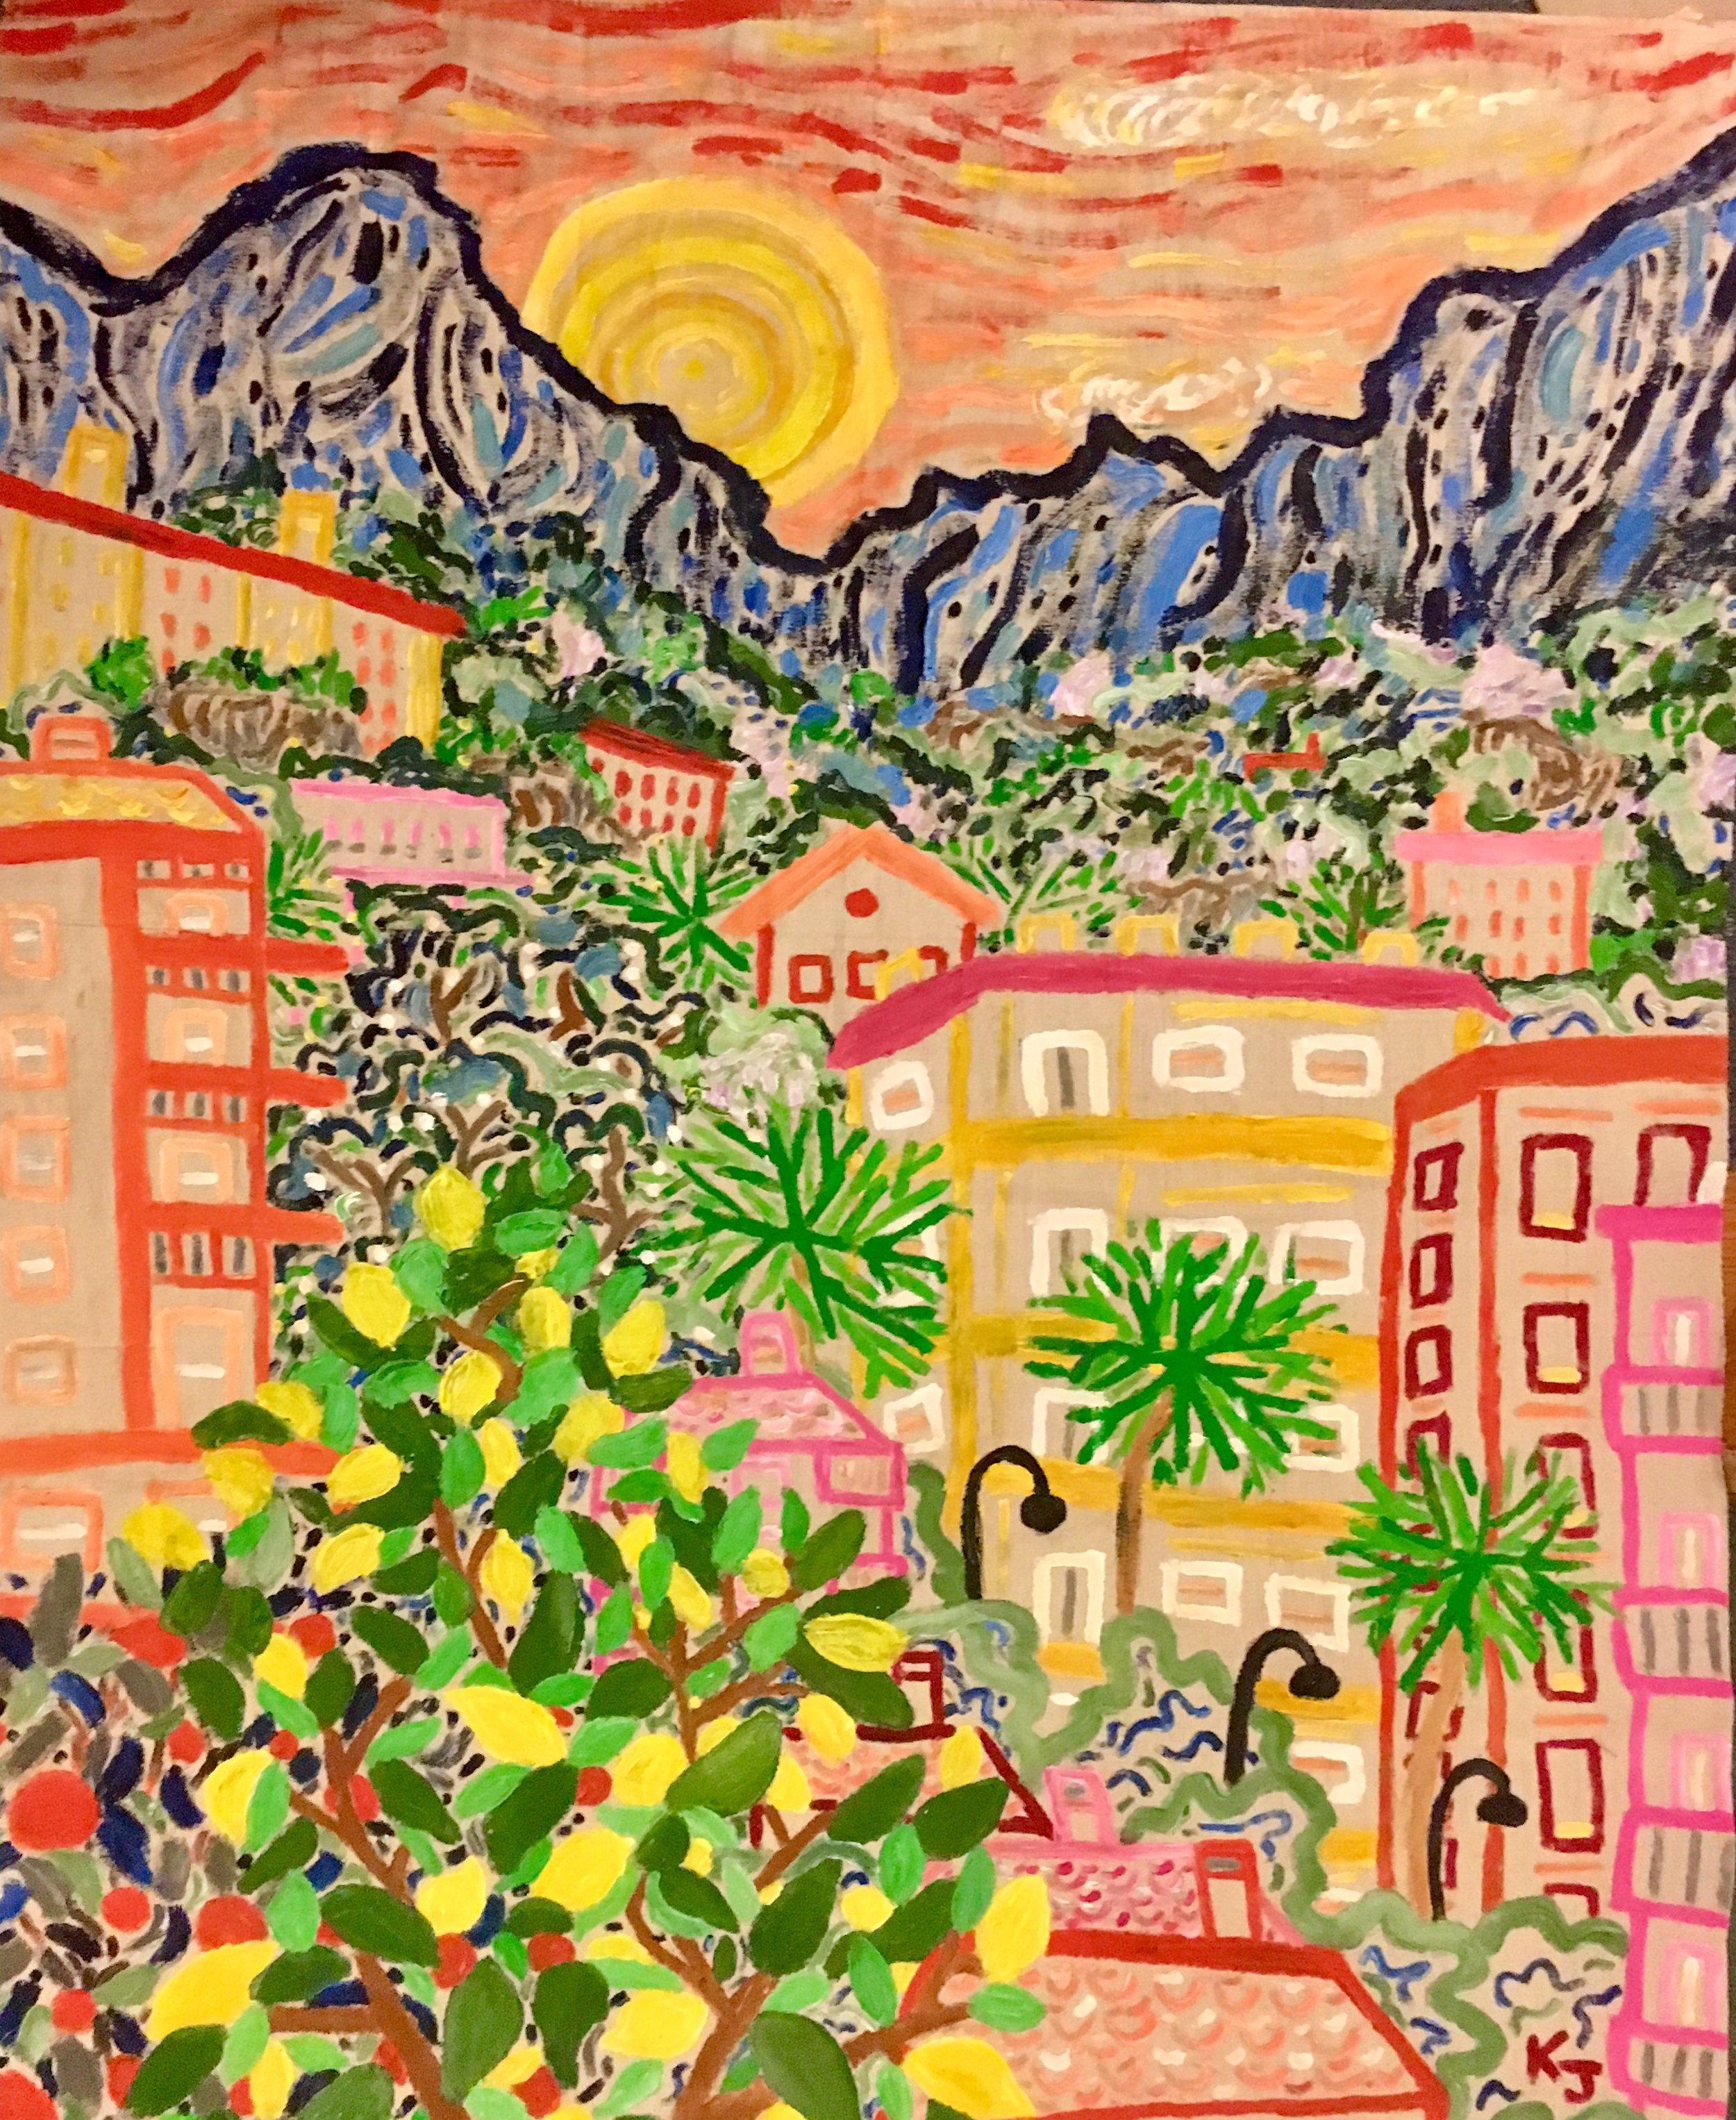 Day 4: Finished painting,  Menton, France